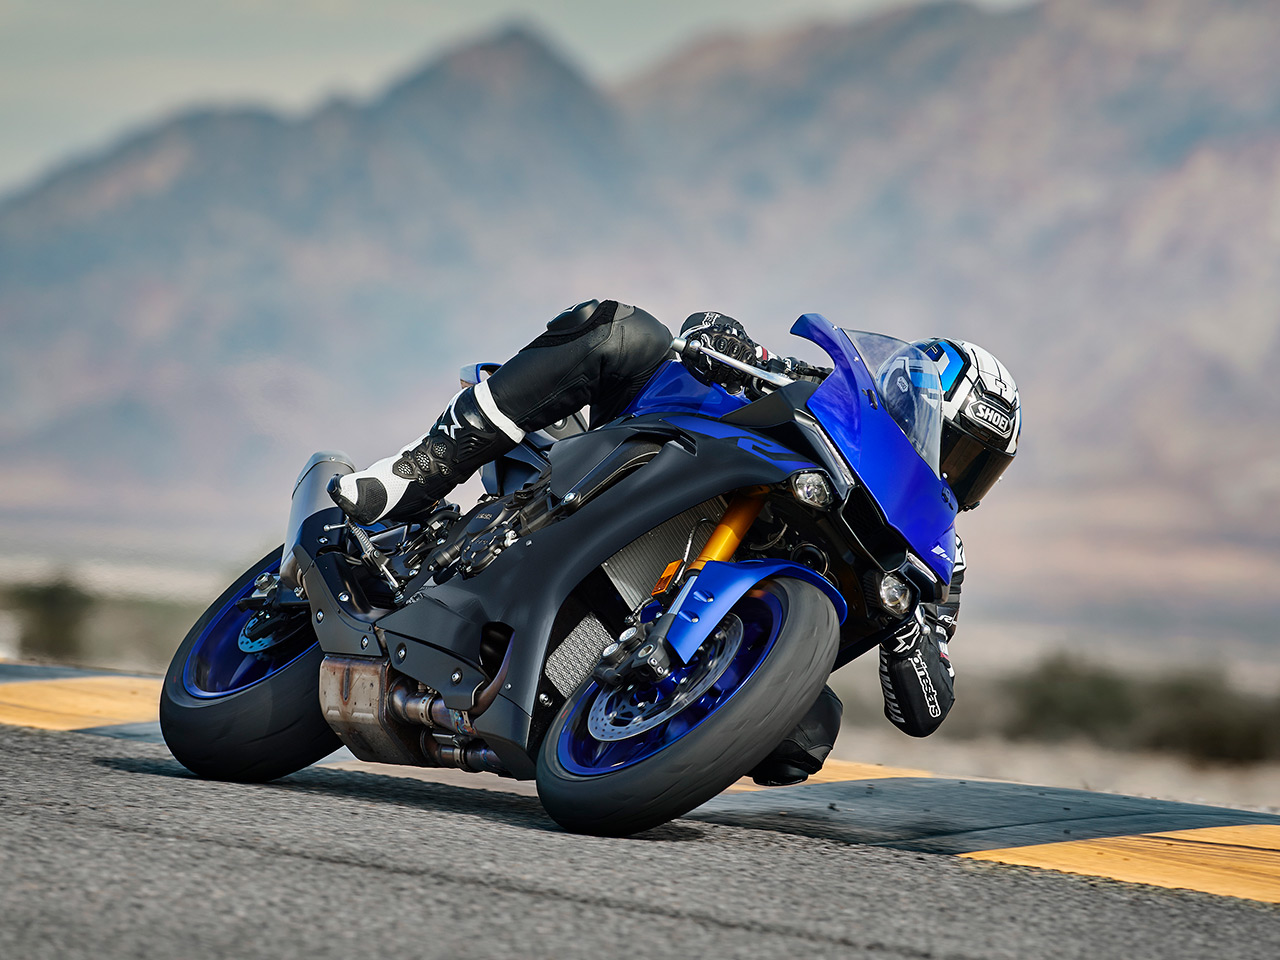 Yamaha YZF-R1 motorcycle riding on the road